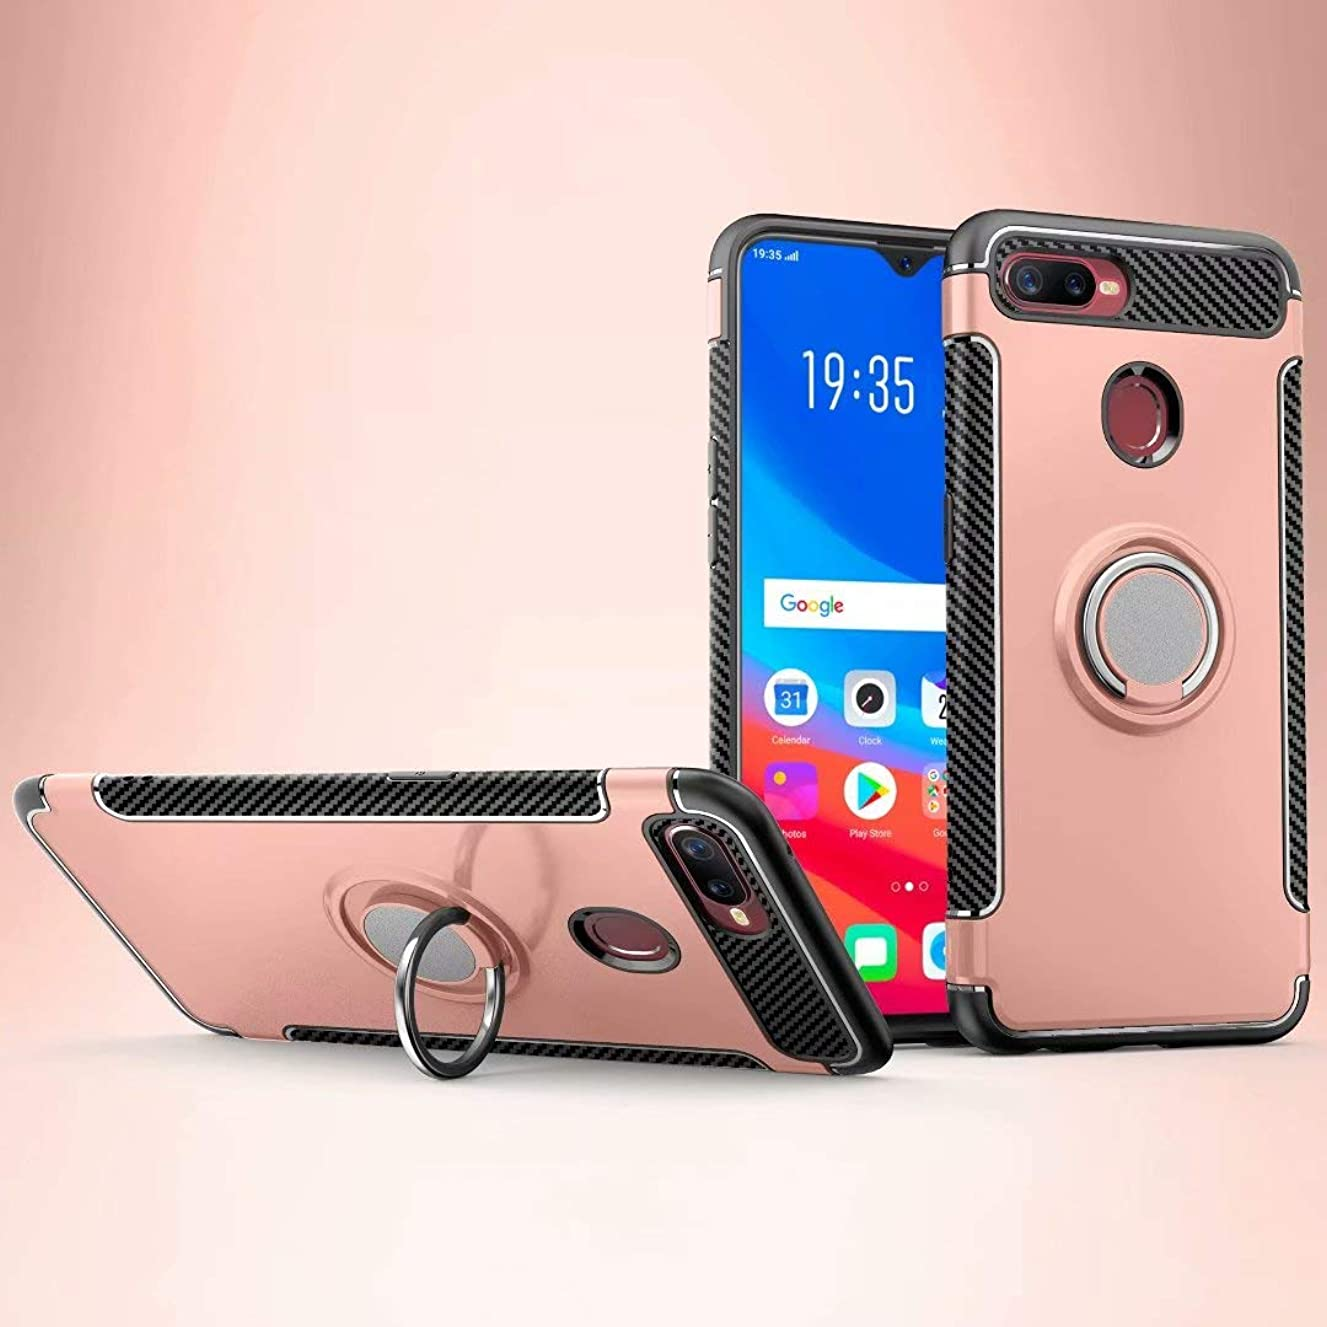 CHENJUAN Armor Dual Layer 2 in 1 Heavy Duty Shockproof Protection Case with 360 Degree Rotating Finger Ring Holder and Magnet Car Holder Case Design for Oppo F9/F9 Pro/Oppo A7X (Color : Rose Gold)